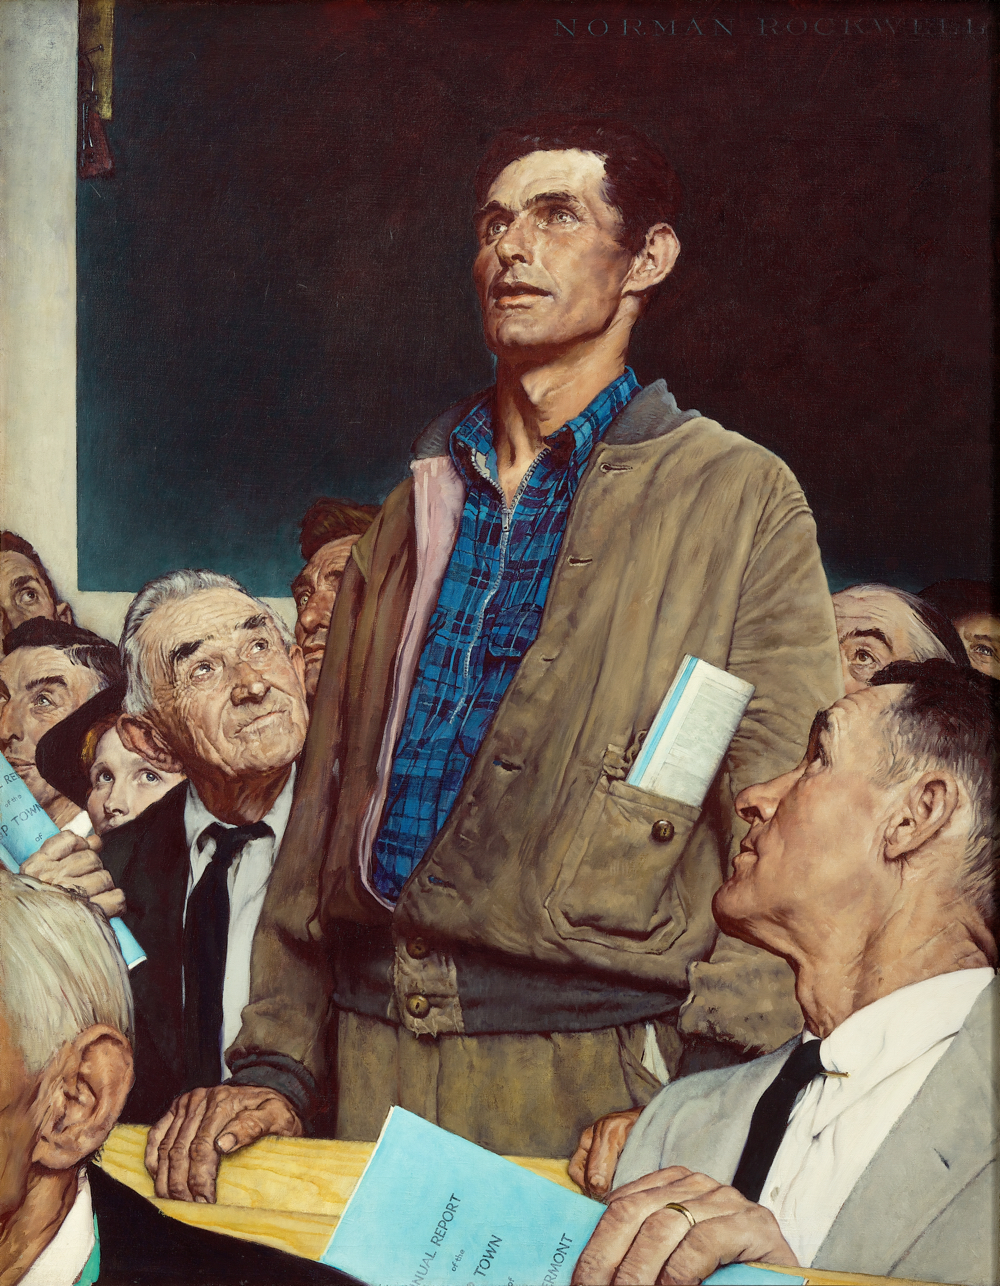 Norman Rockwell (1894-1978), Freedom of Speech, 1943. Story illustration for The Saturday Evening Post, February 20, 1943. Collection of Norman Rockwell Museum. (c)SEPS: Curtis Licensing, Indianapolis, IN. All rights reserved. www.curtislicensing.com